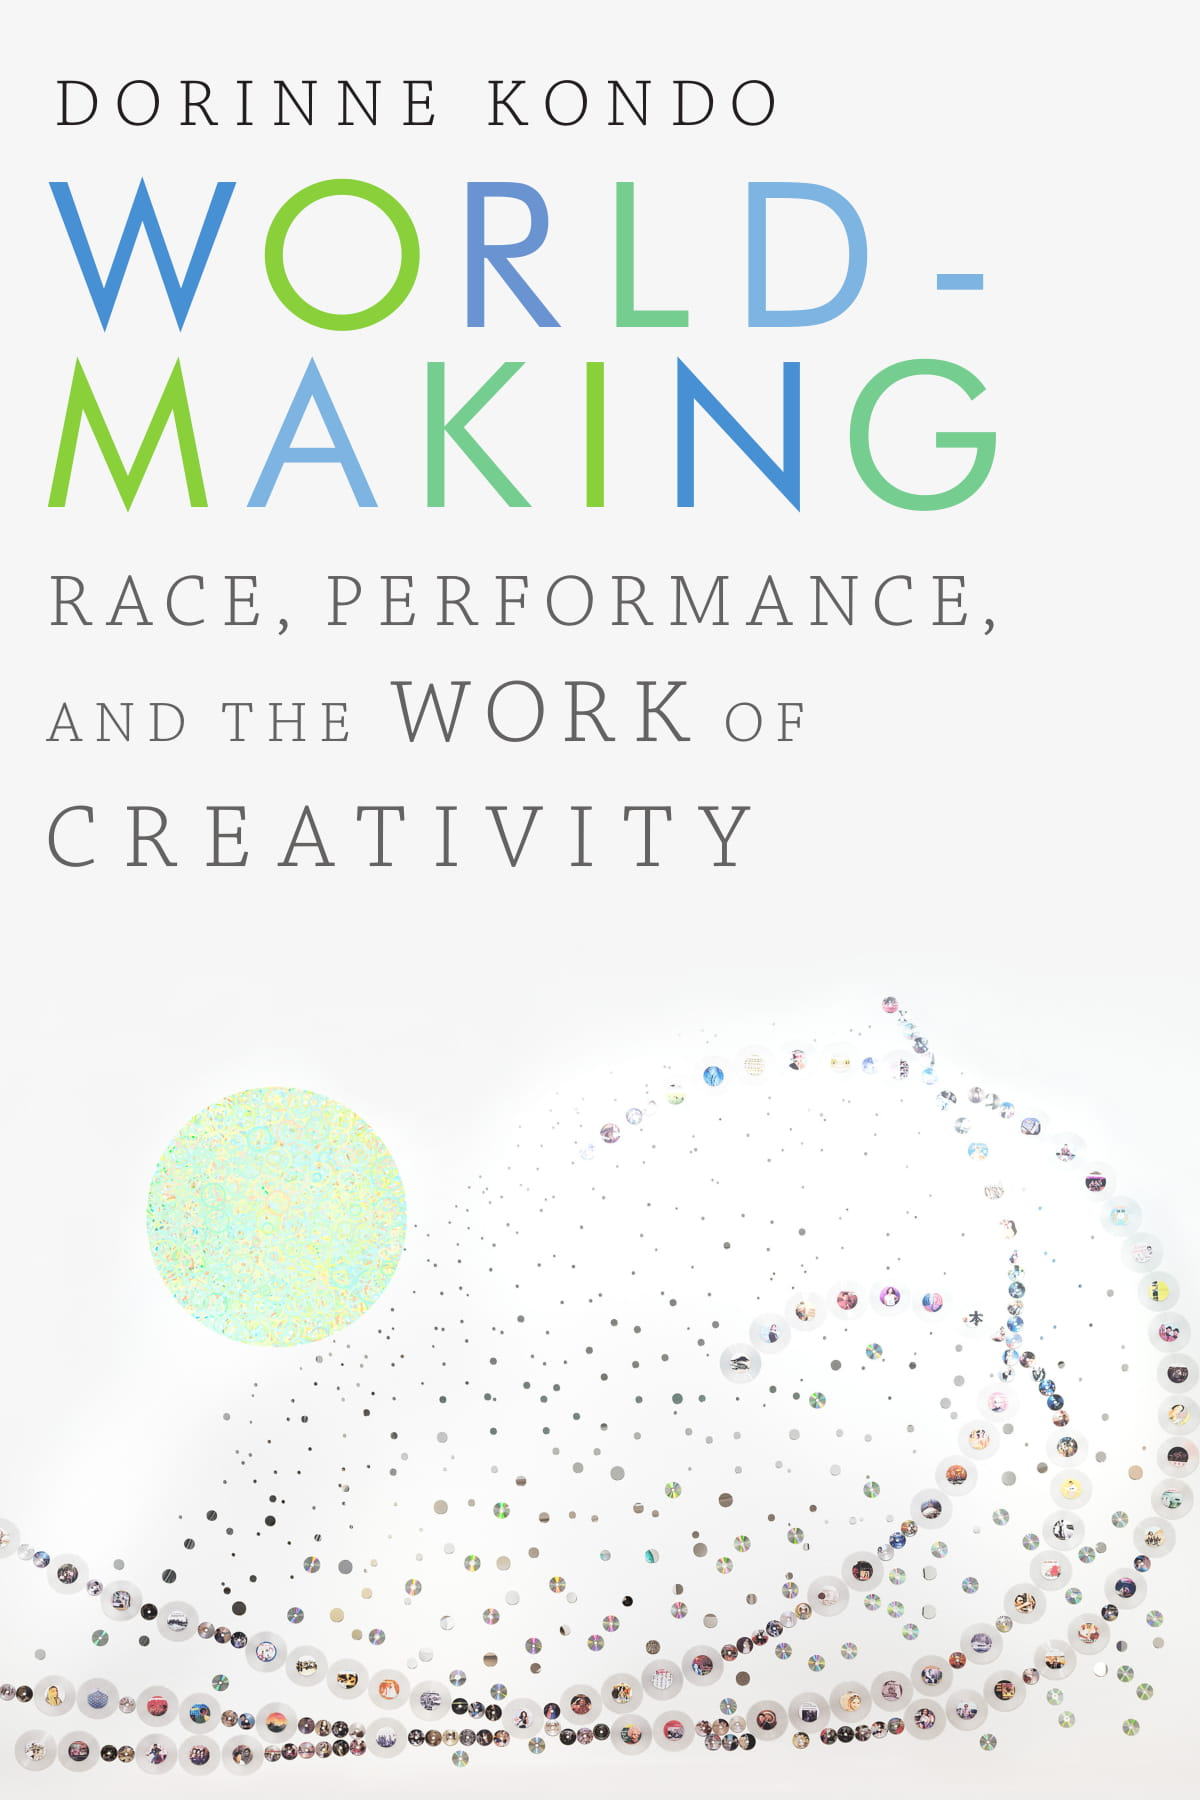 "Dorinne Kondo discusses her book with Viet Thanh Nguyen. - June 17, 2019 at 7:00pmVROMAN's Bookstore - 695 E. Colorado Boulevard, Pasadena, CA 91101Worldmaking: Race, Performance, and the Work of Creativity (Paperback)By Dorinne KondoISBN: 9781478000945Published: Duke University Press - December 27th, 2018Watch the Conversation with Viet Here.WAtch the presentation of ""Seamless"" here."